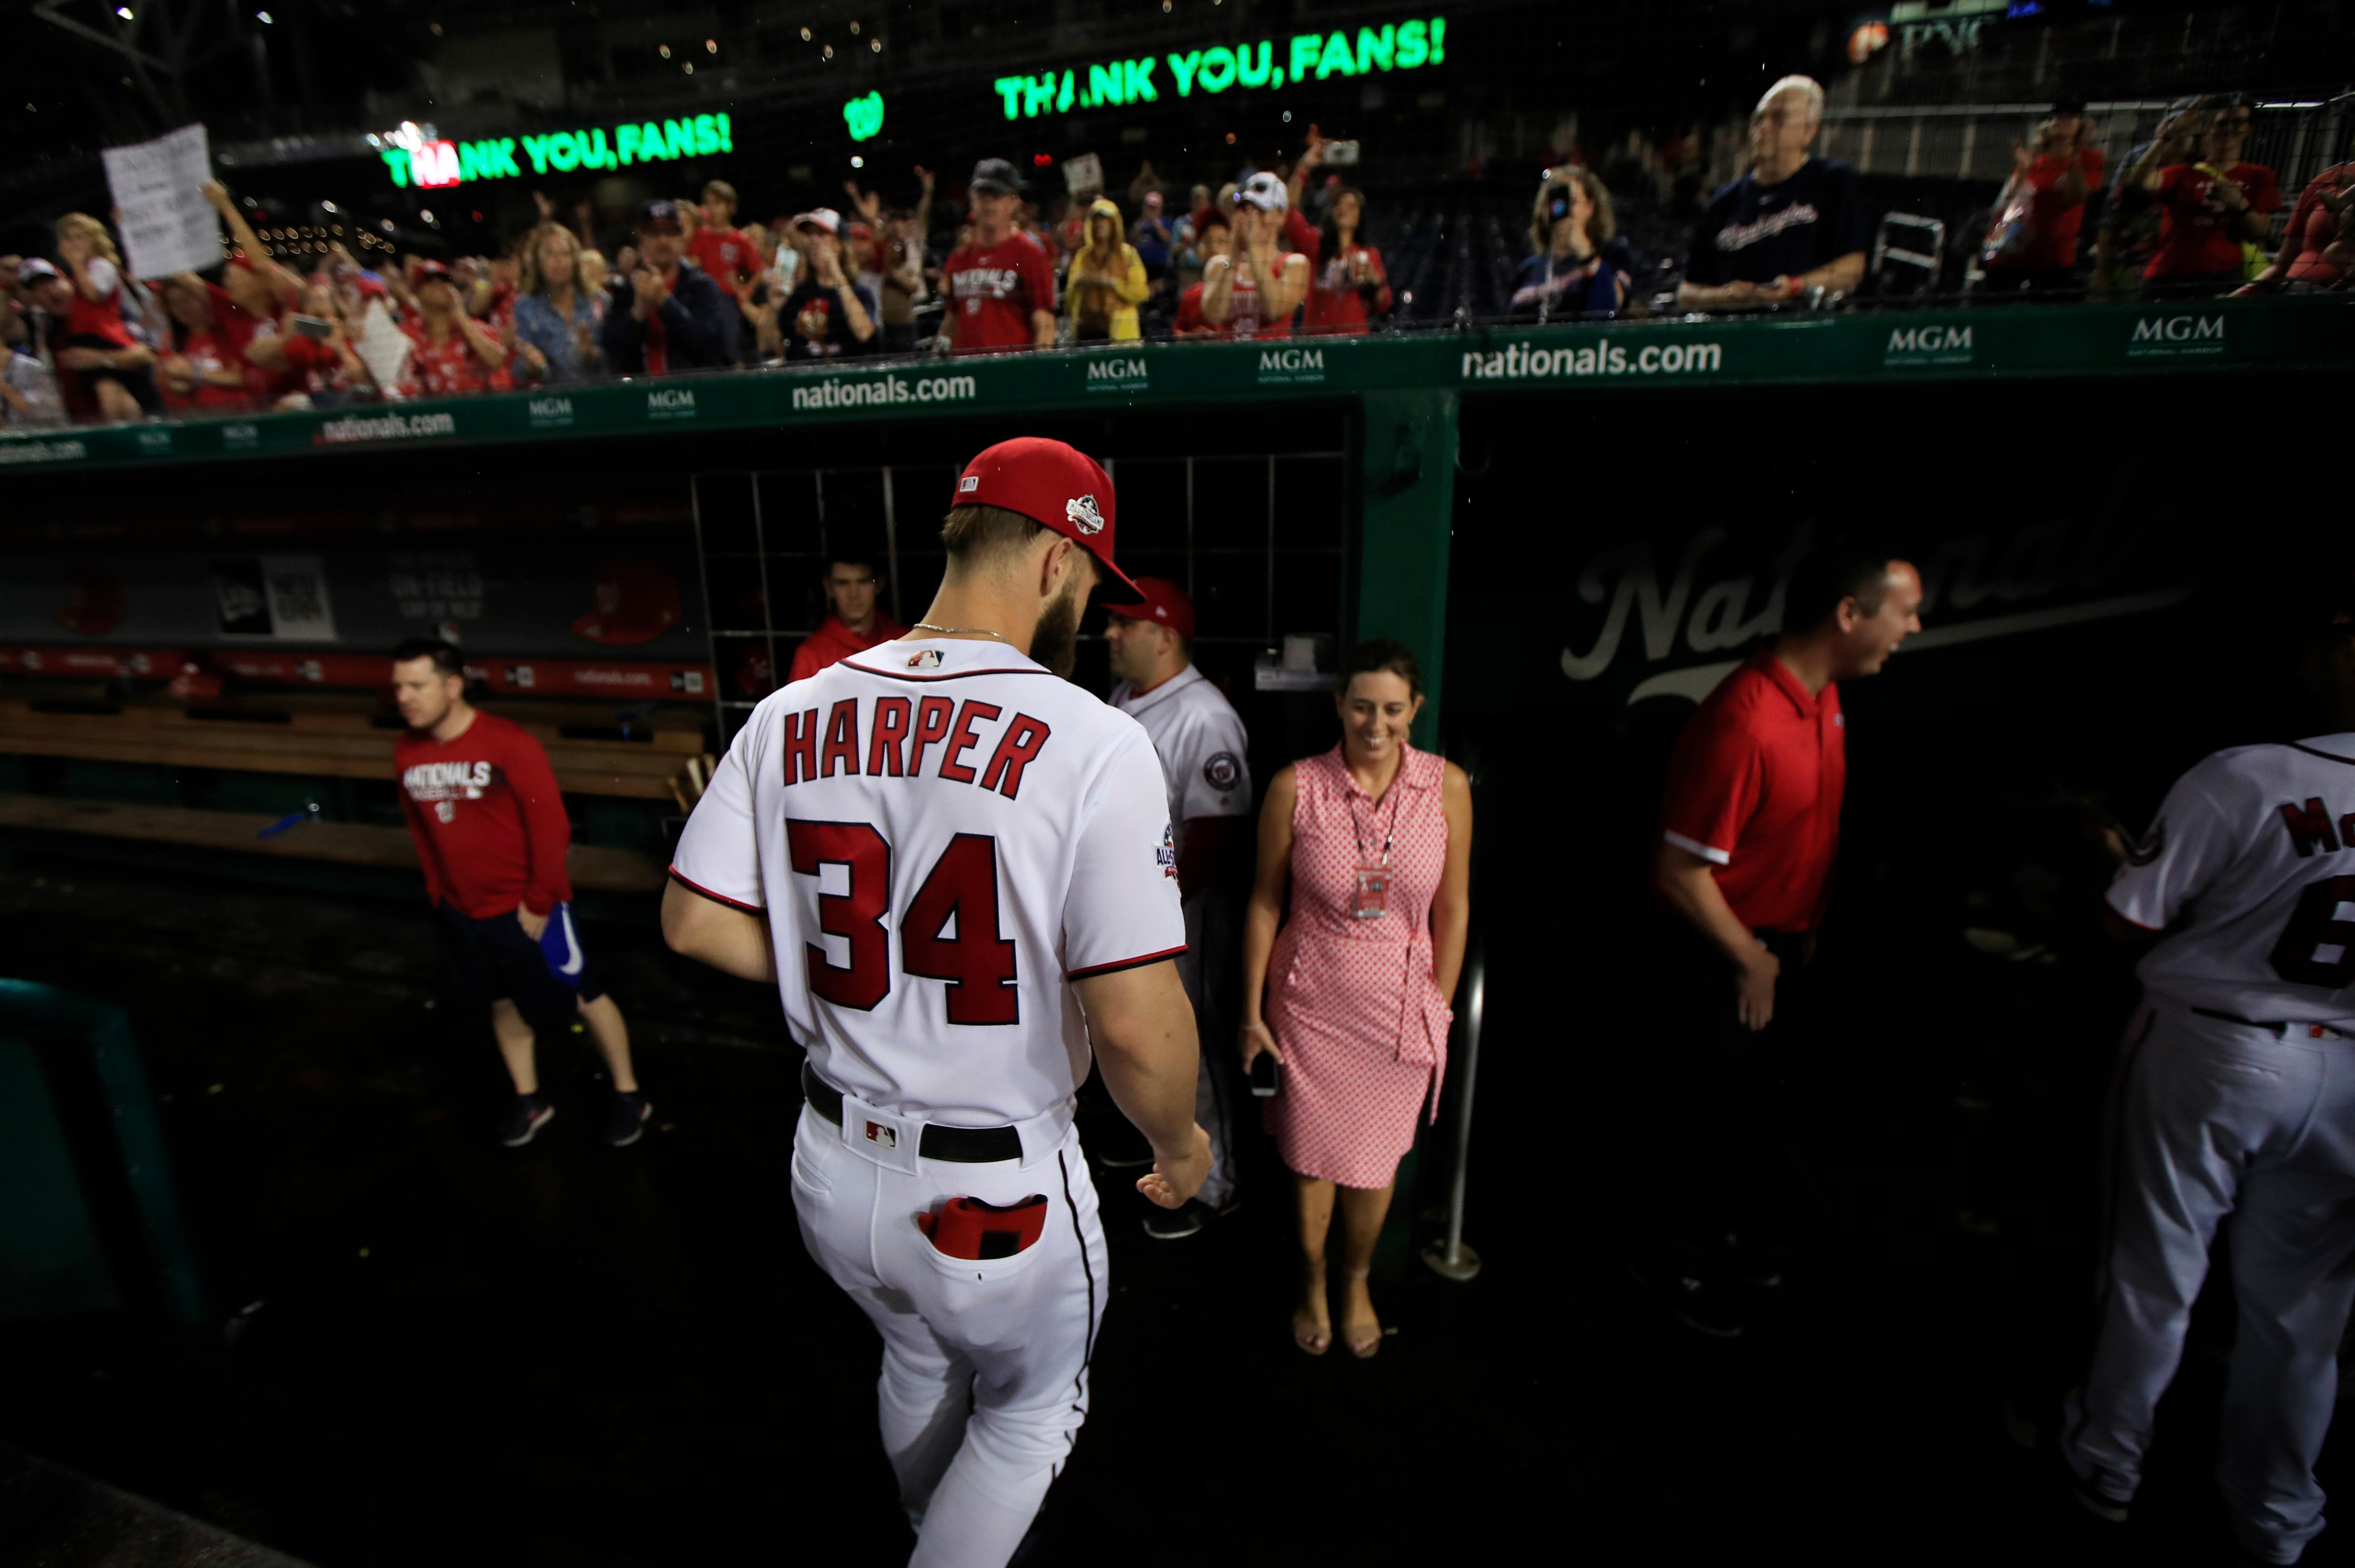 Washington Nationals Bryce Harper (34) leaves the field as the Nationals ended their last home game of the season with a 9-3 rain delayed win against the Miami Marlins in Washington, Wednesday, Sept. 26, 2018. (AP Photo/Manuel Balce Ceneta)